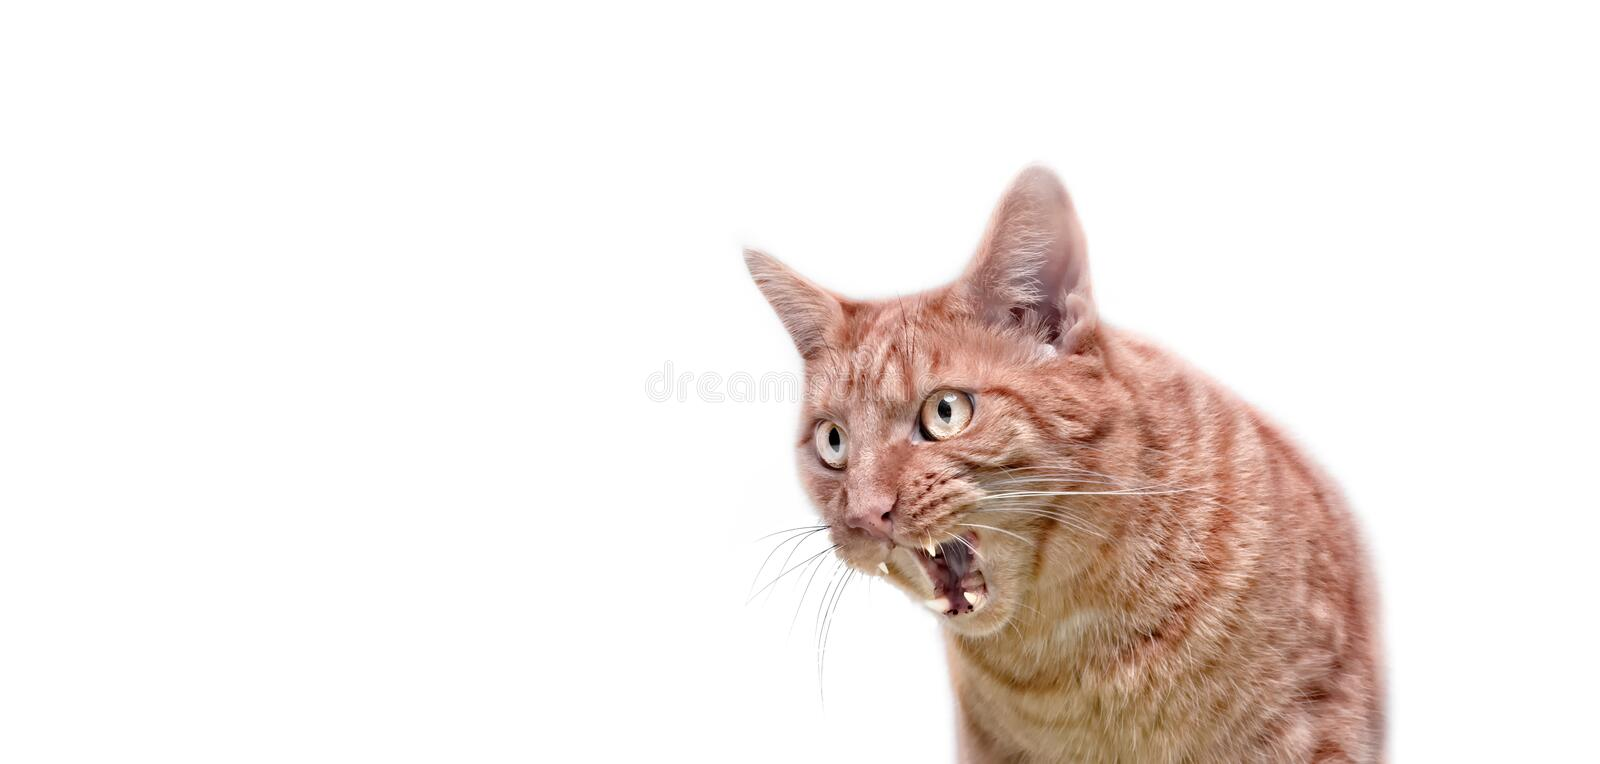 Angry ginger cat looking sideways and hissing with mouth open. stock images